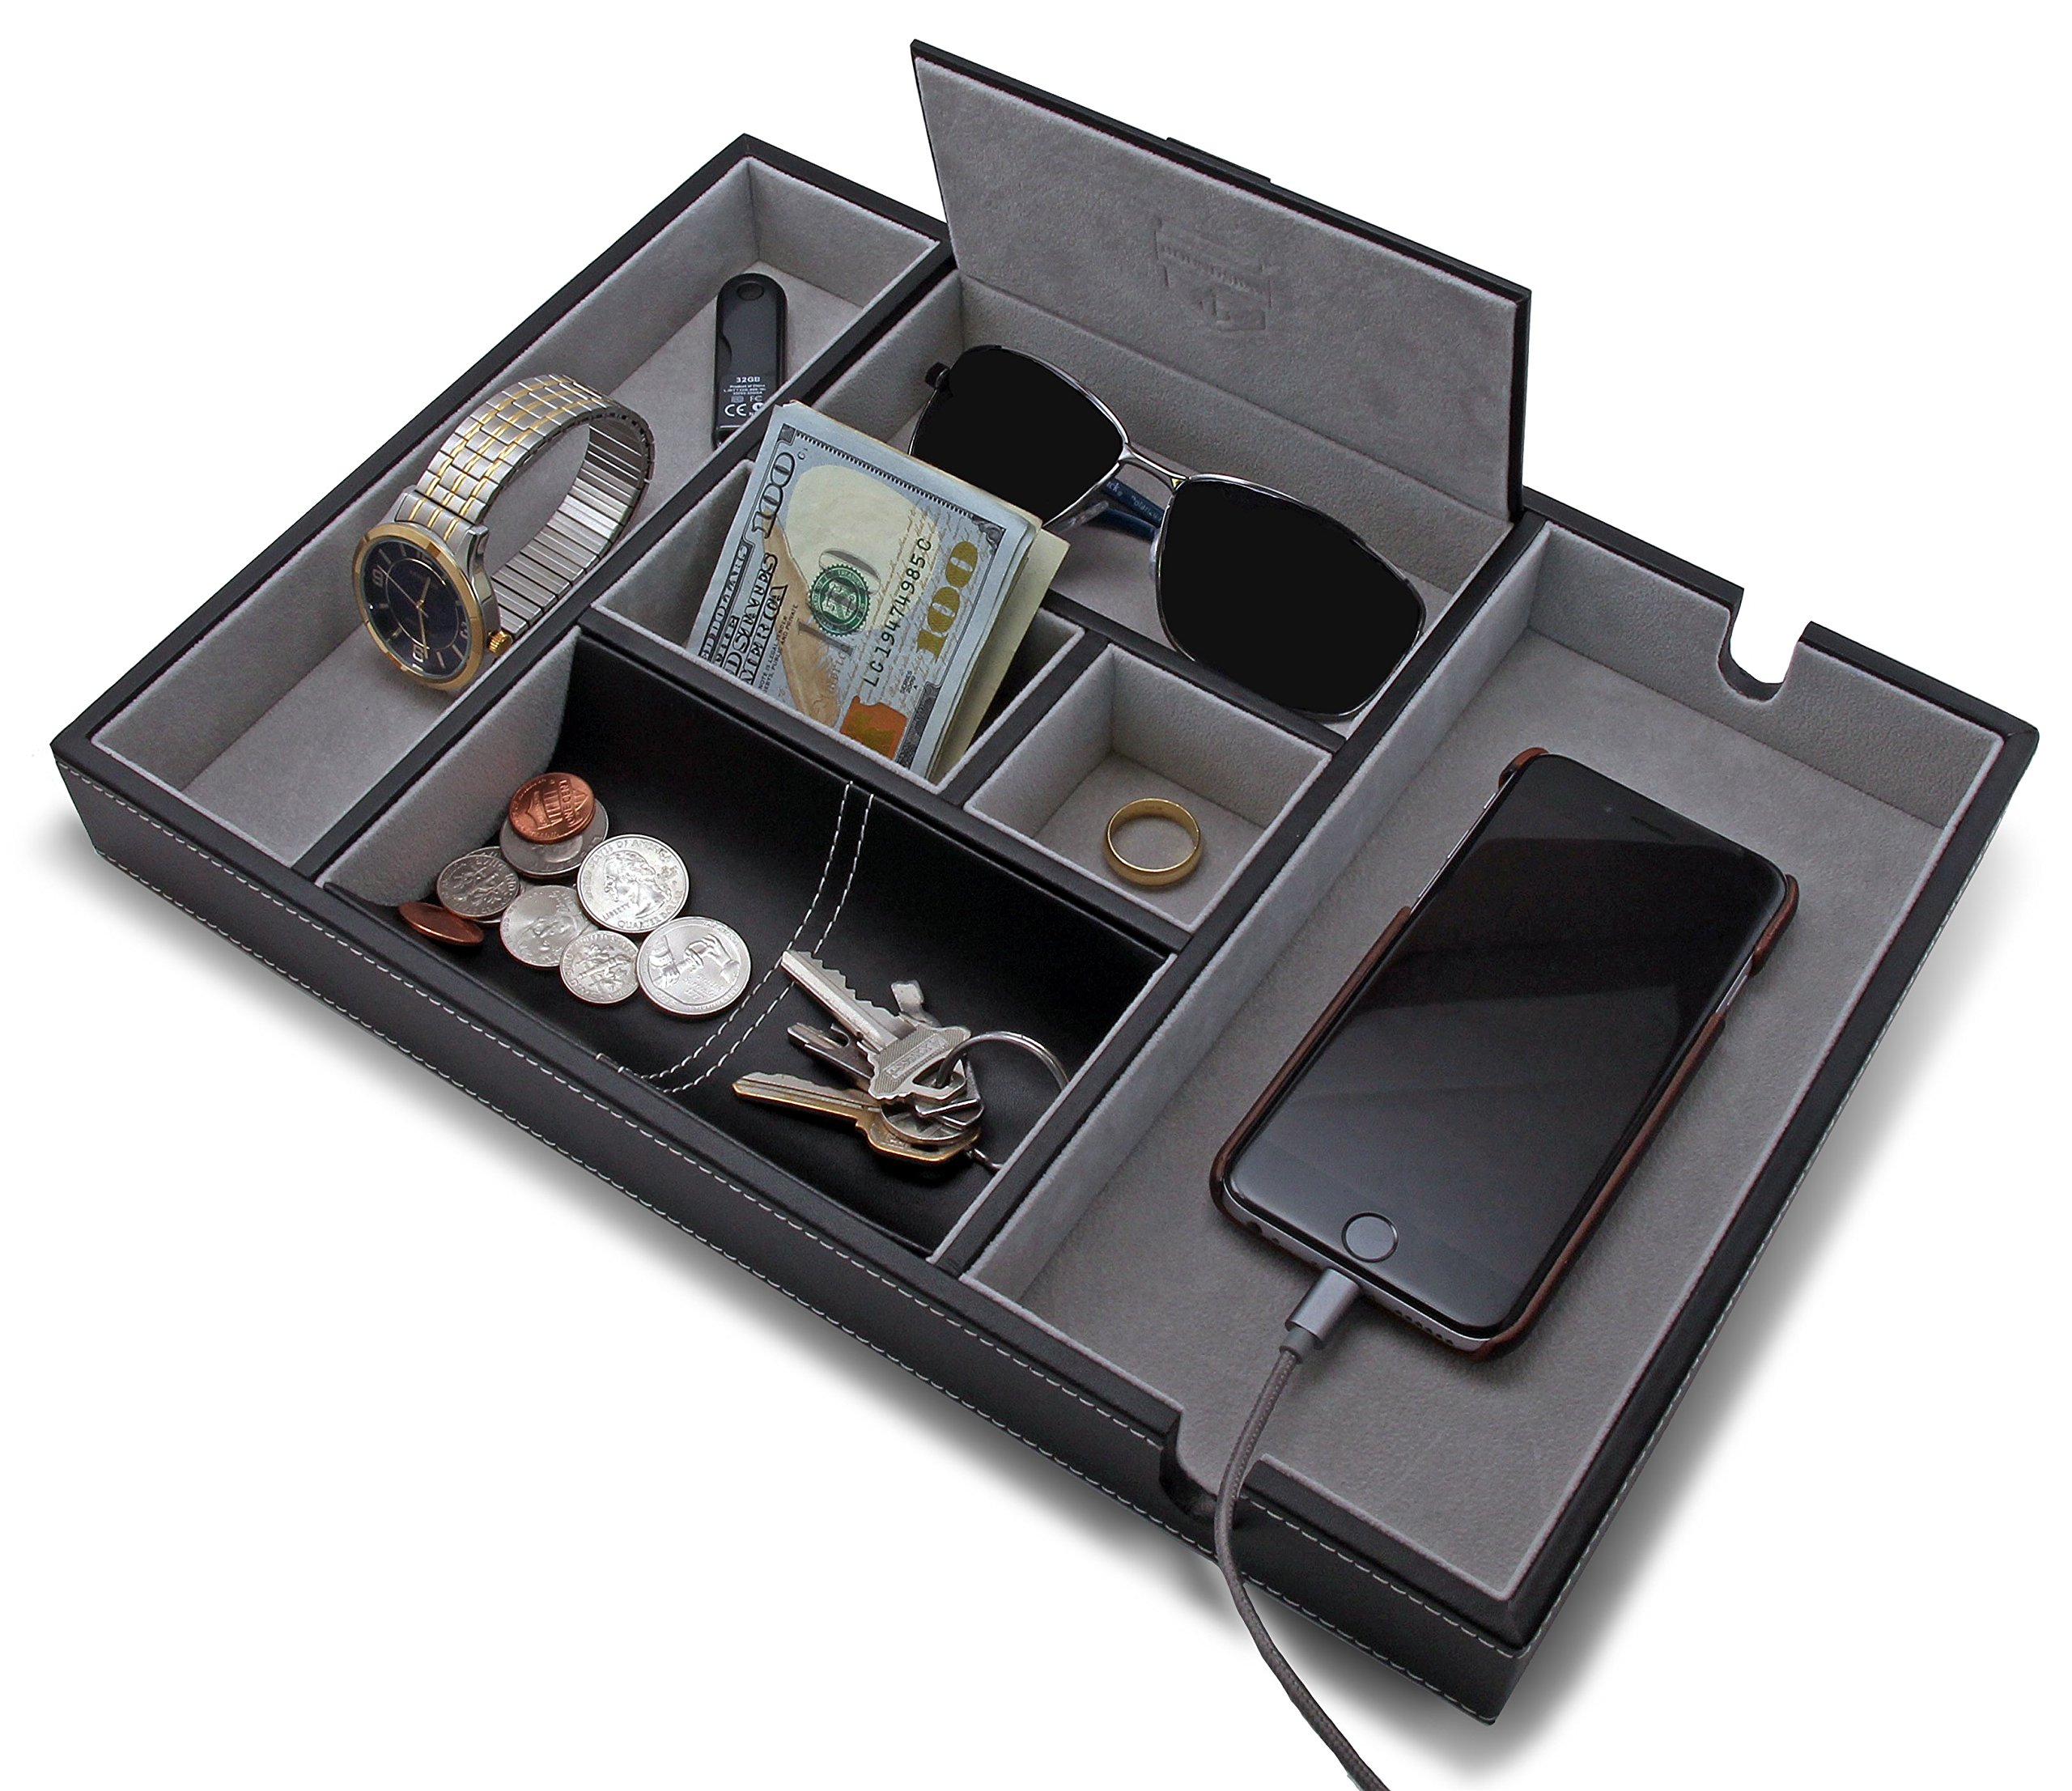 HOUNDSBAY ''Victory Valet Tray for Men with Large Smartphone Charging Station (Grey)